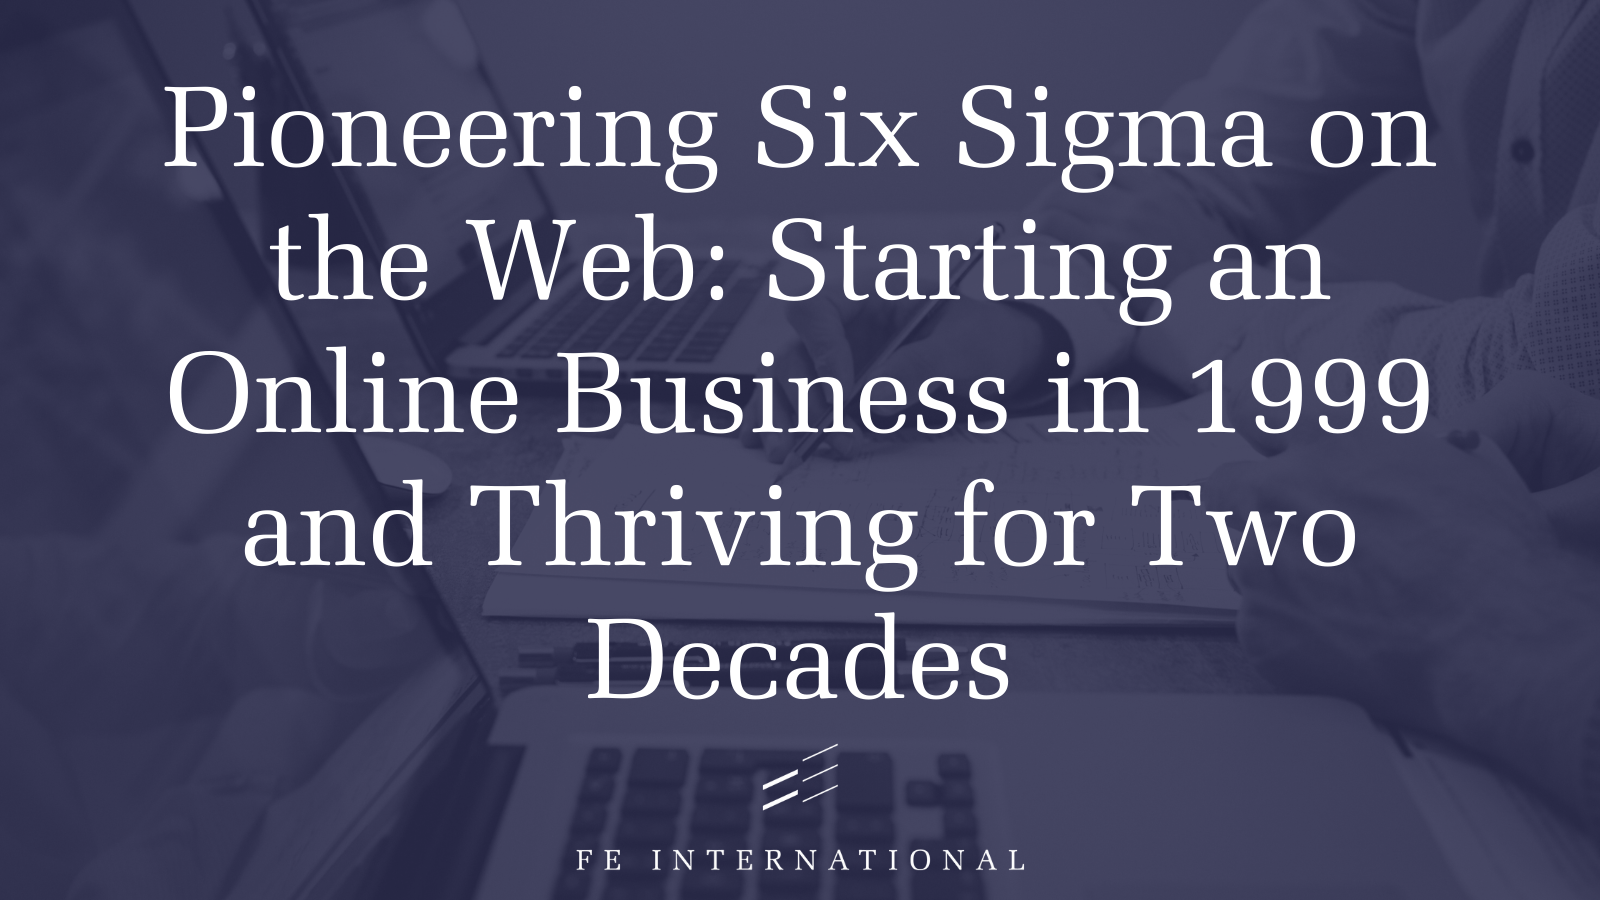 Pioneering Six Sigma on the Web: Starting an Online Business in 1999 and Thriving for Two Decades